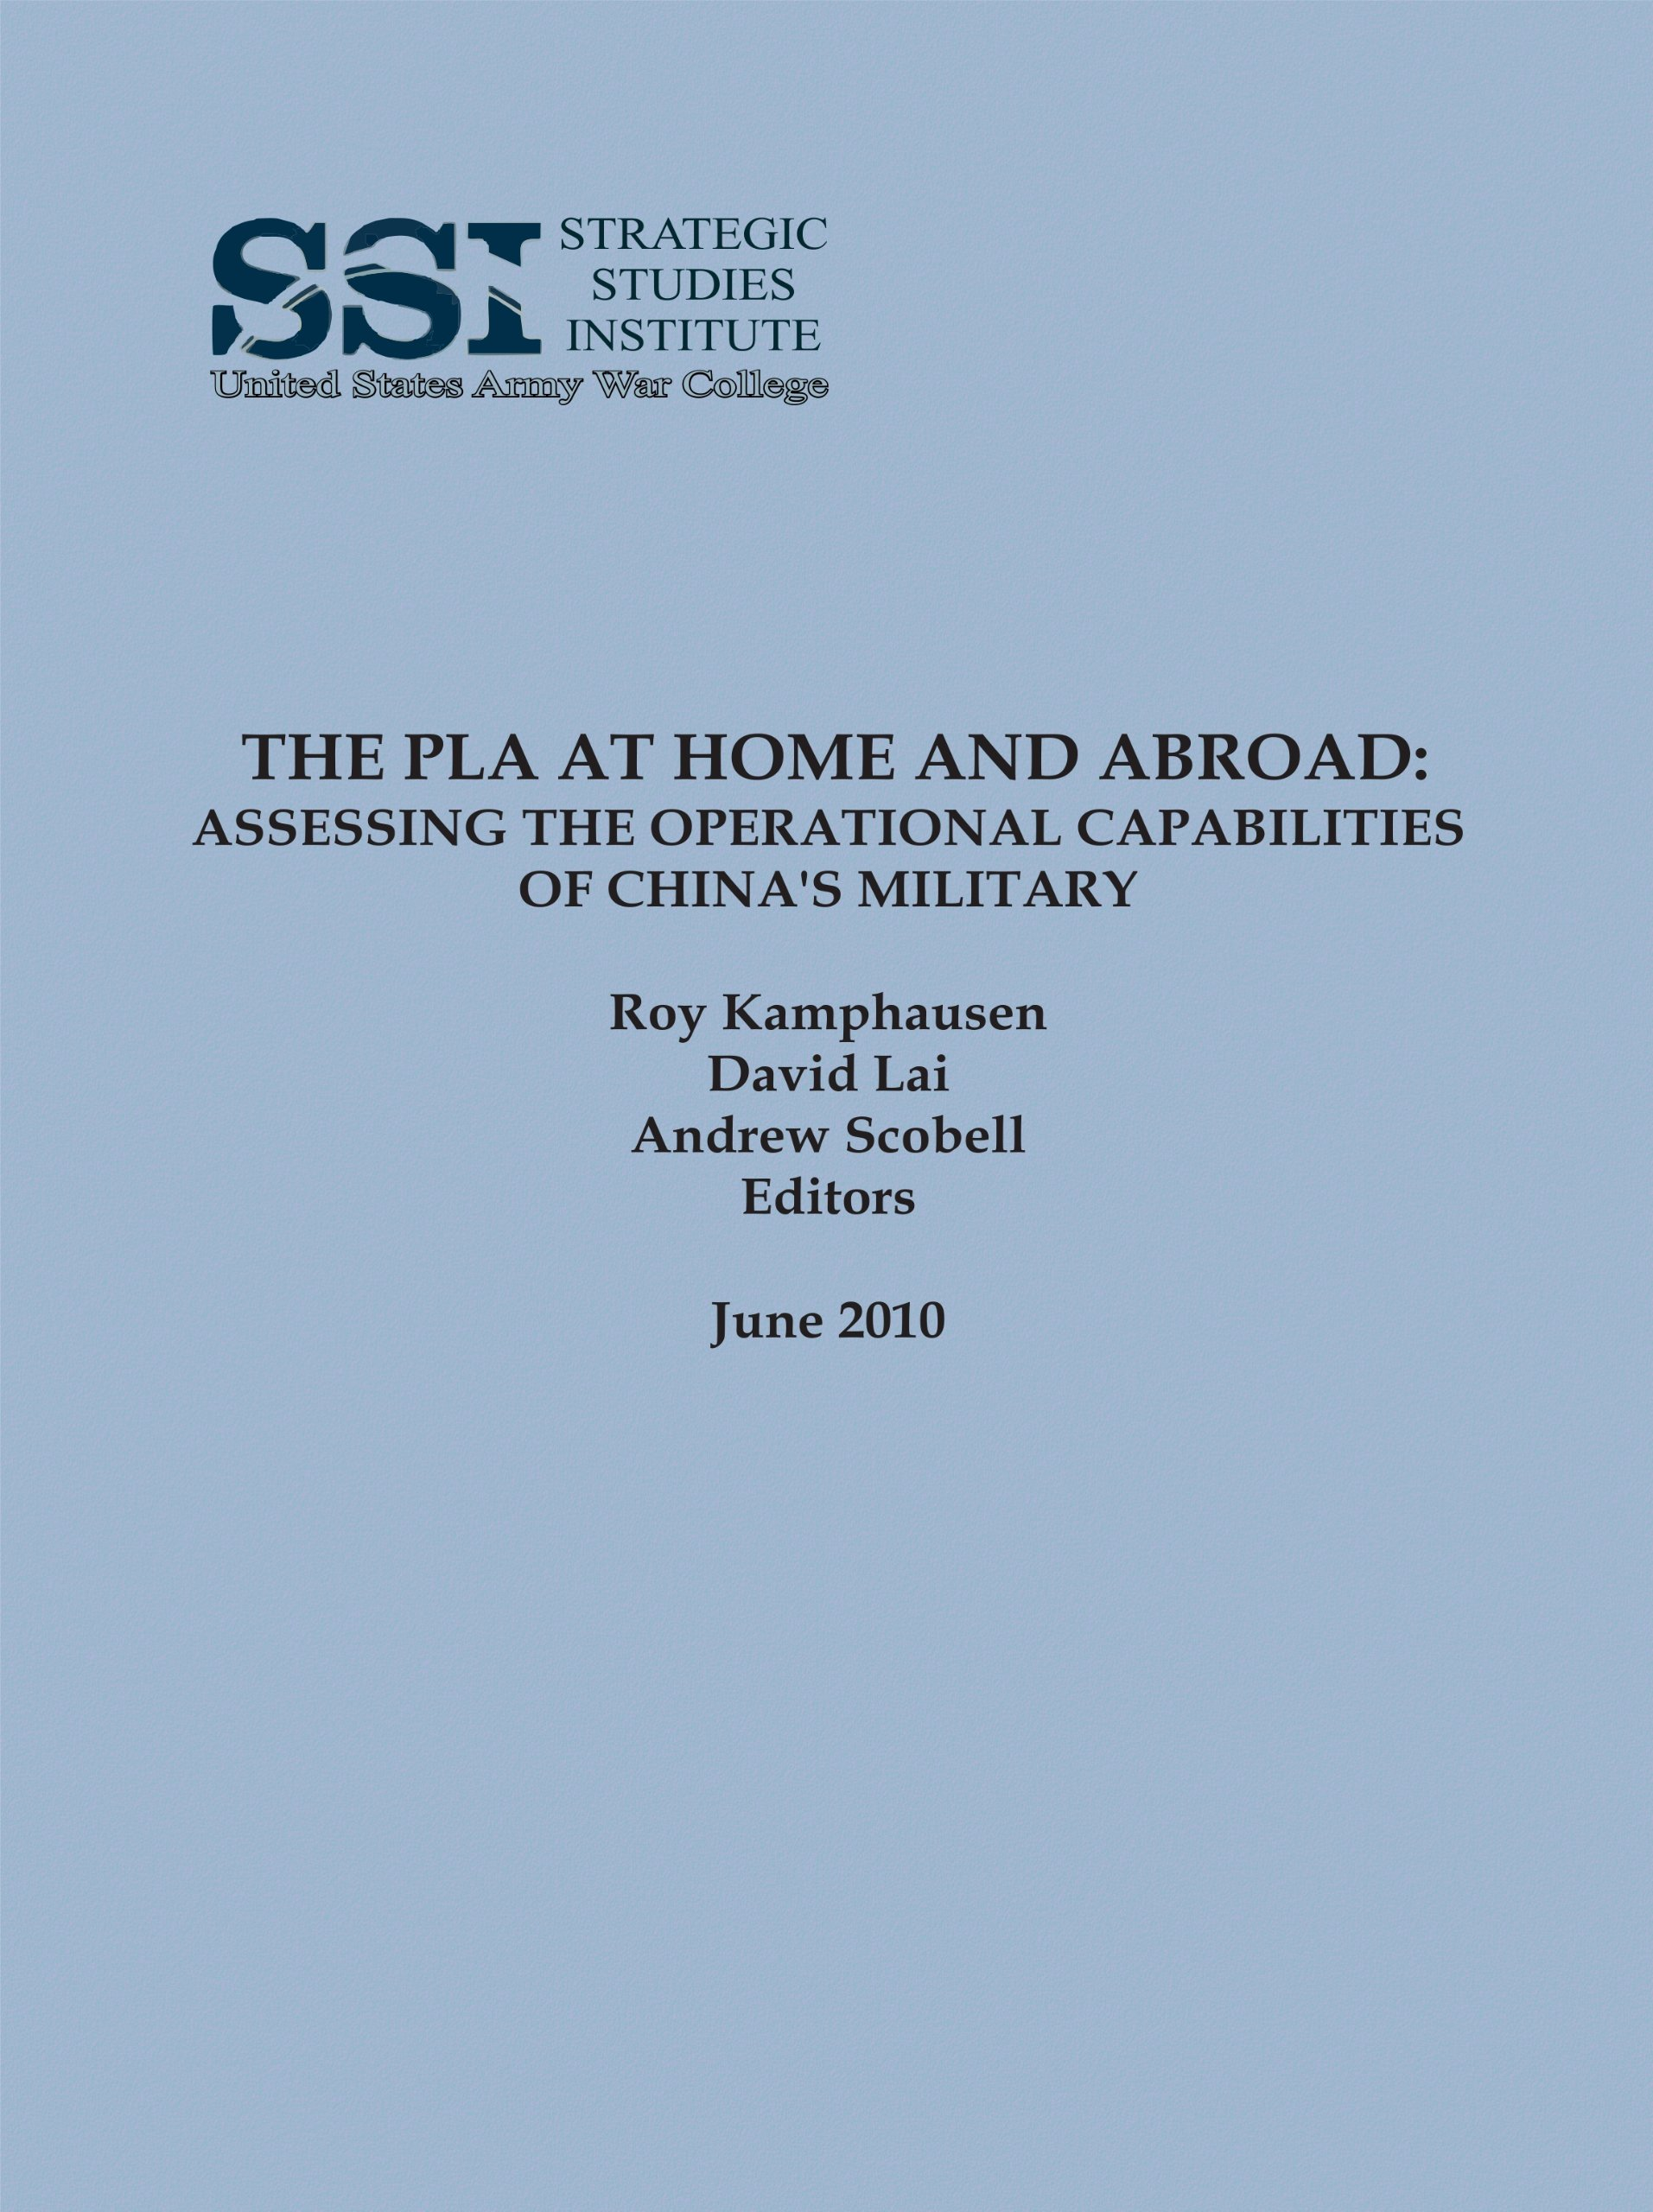 THE PLA AT HOME AND ABROAD: ASSESSING THE OPERATIONAL CAPABILITIES OF CHINA'S MILITARY June 2010